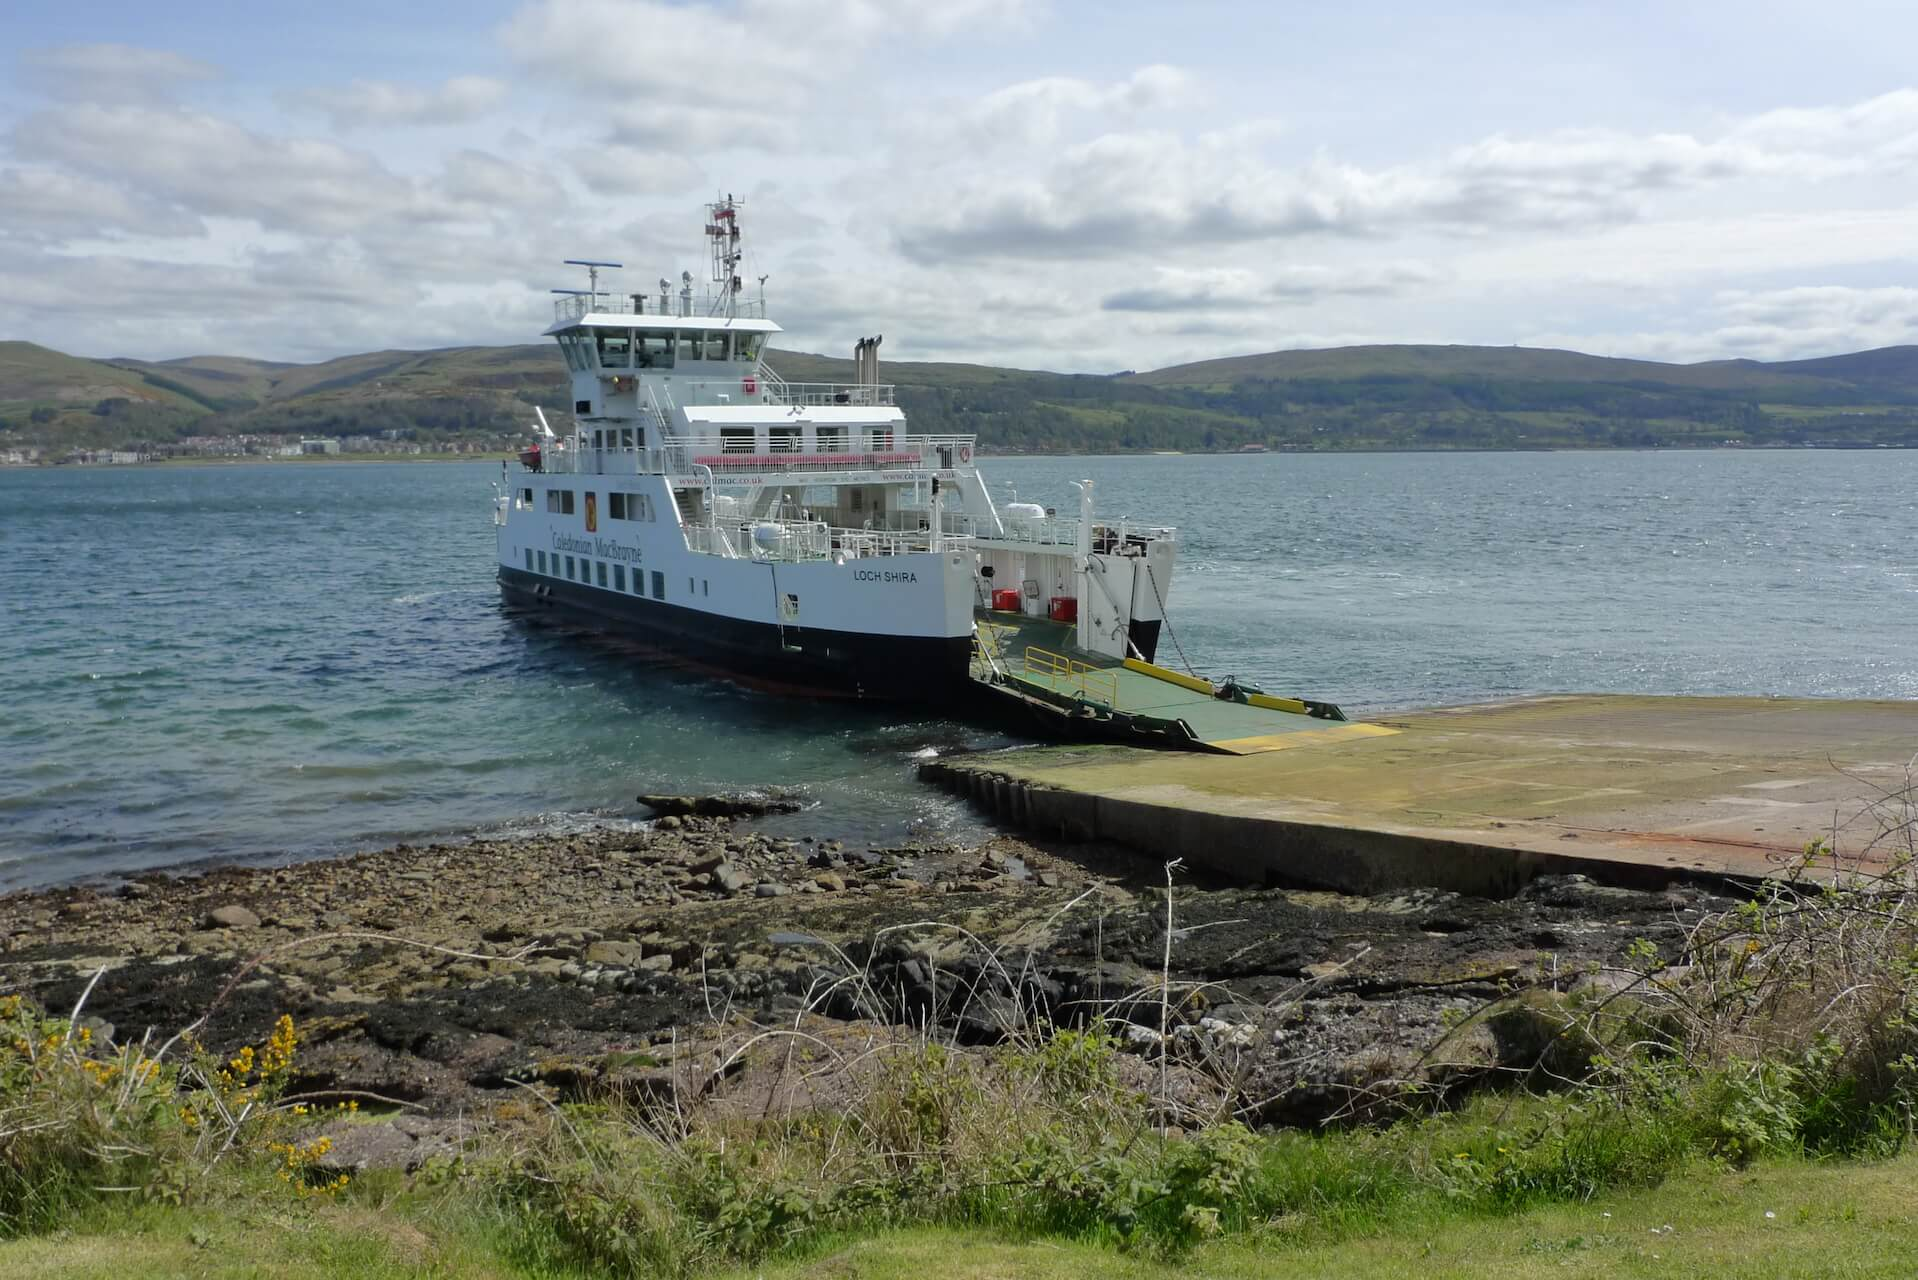 Loch Shira Ferry from Largs to Cumbrae